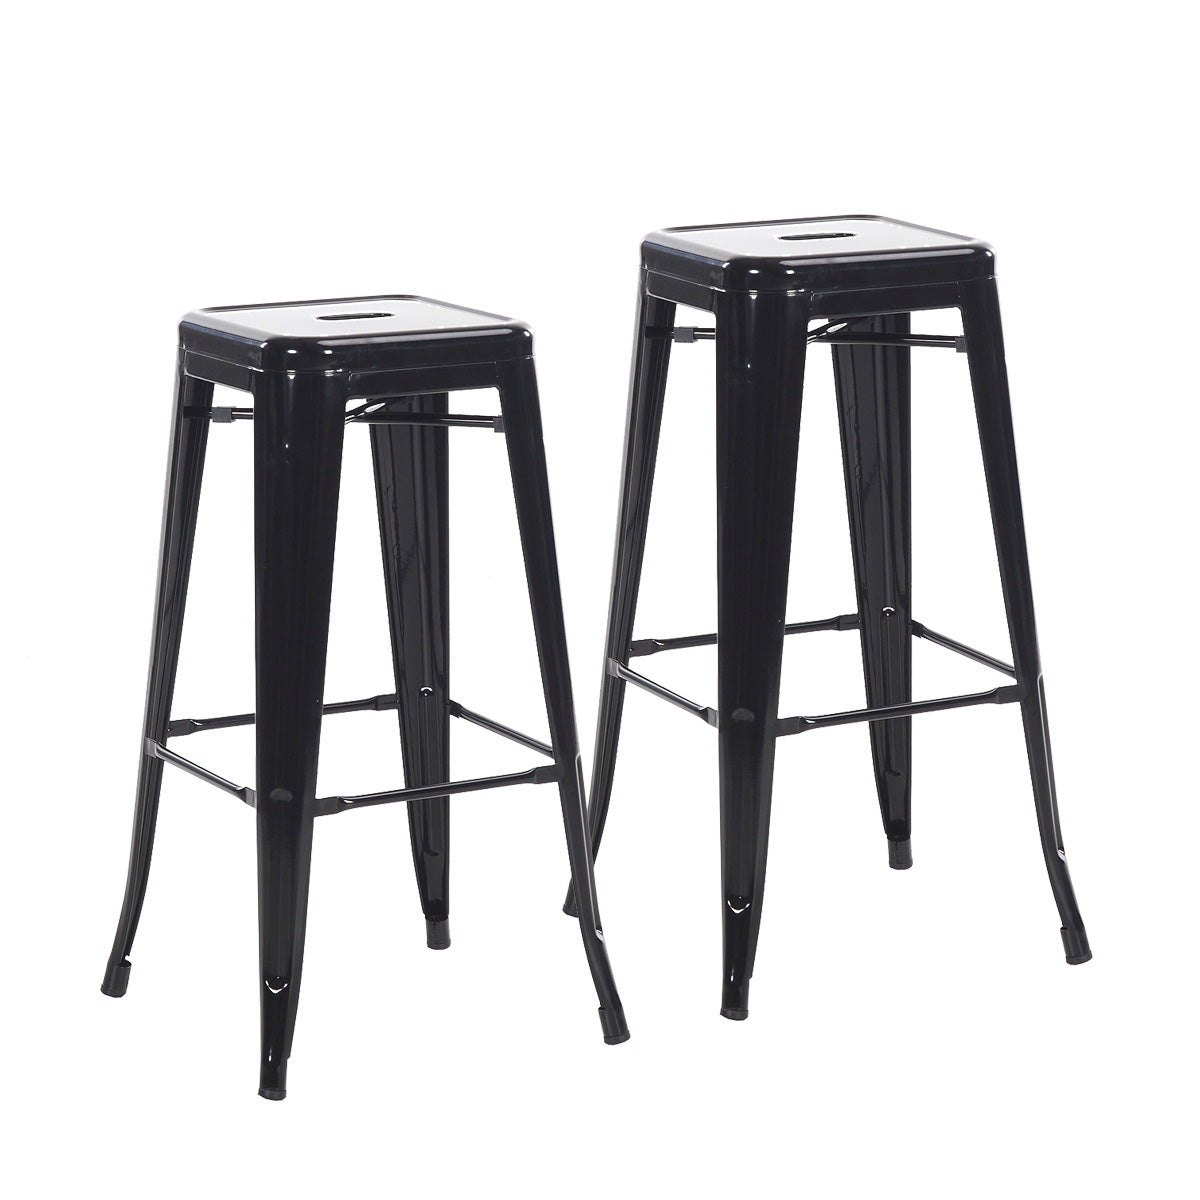 Buschman Set Of 2 Black 30 Inch Bar Height Metal Bar Stools Indoor